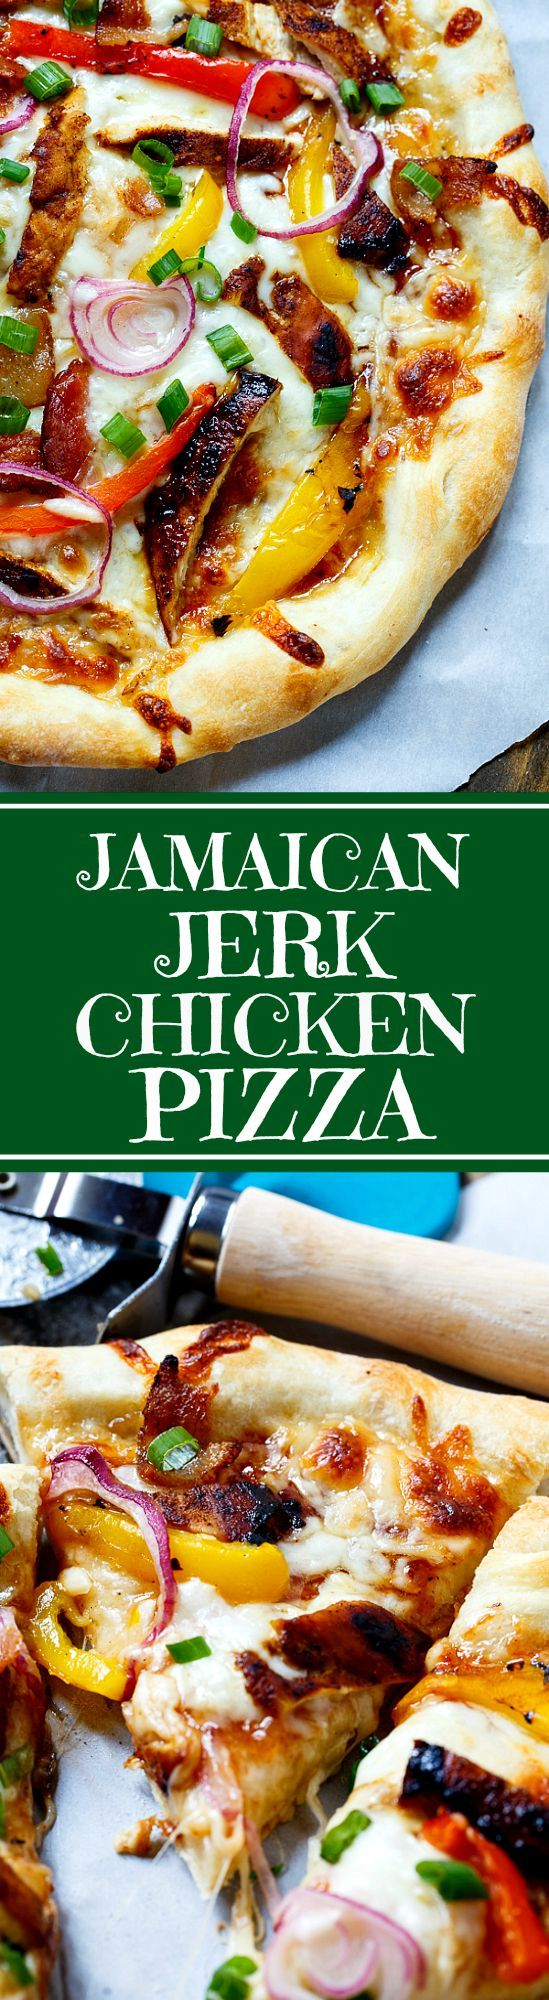 charming California Pizza Kitchen Pizza Size Inches #5: Jamaican Jerk Chicken Pizza | Recipe | Pizza, Sauces And Investing